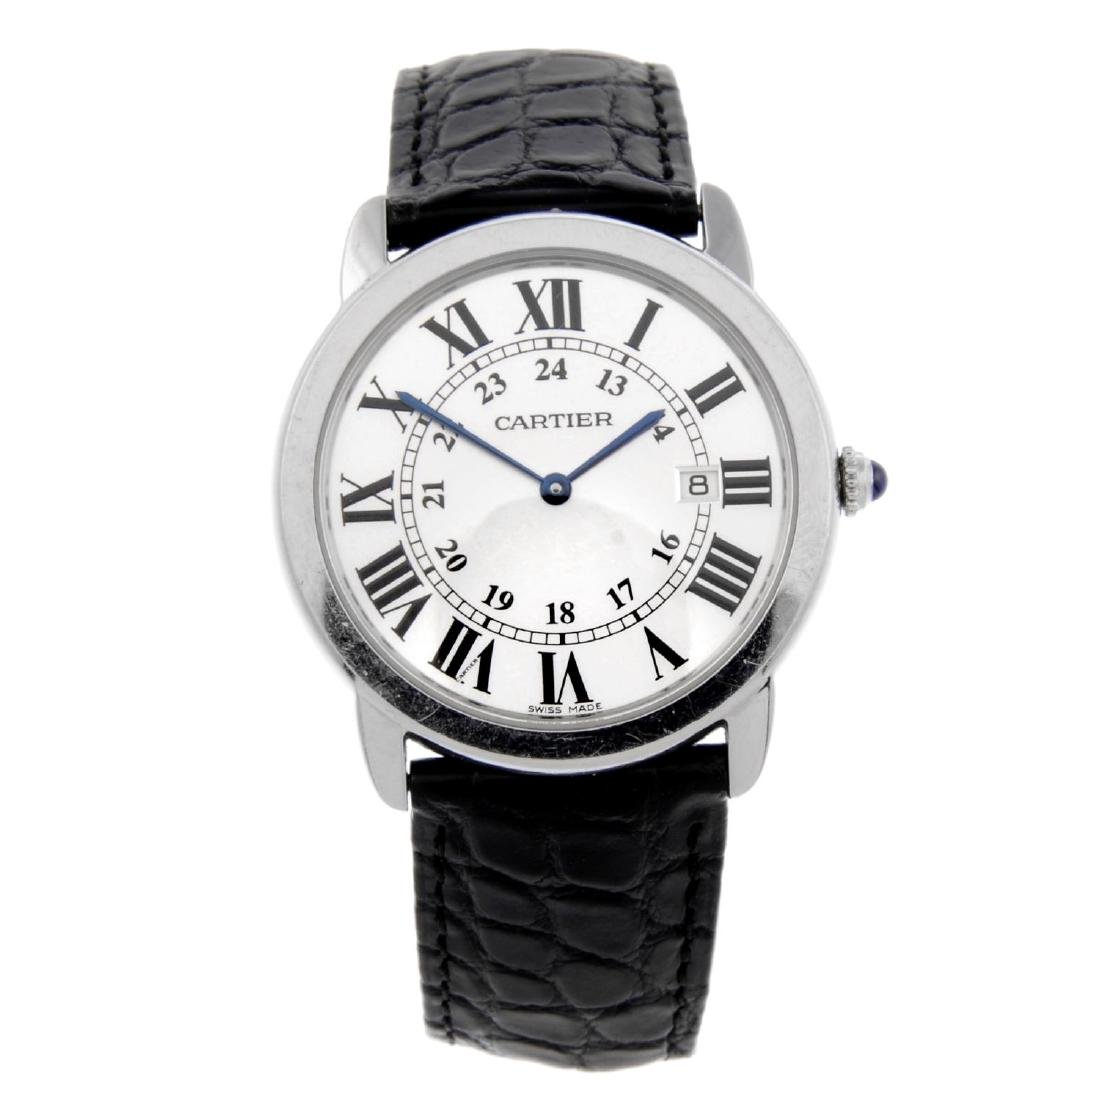 CARTIER - a Ronde Solo wrist watch. Stainless steel